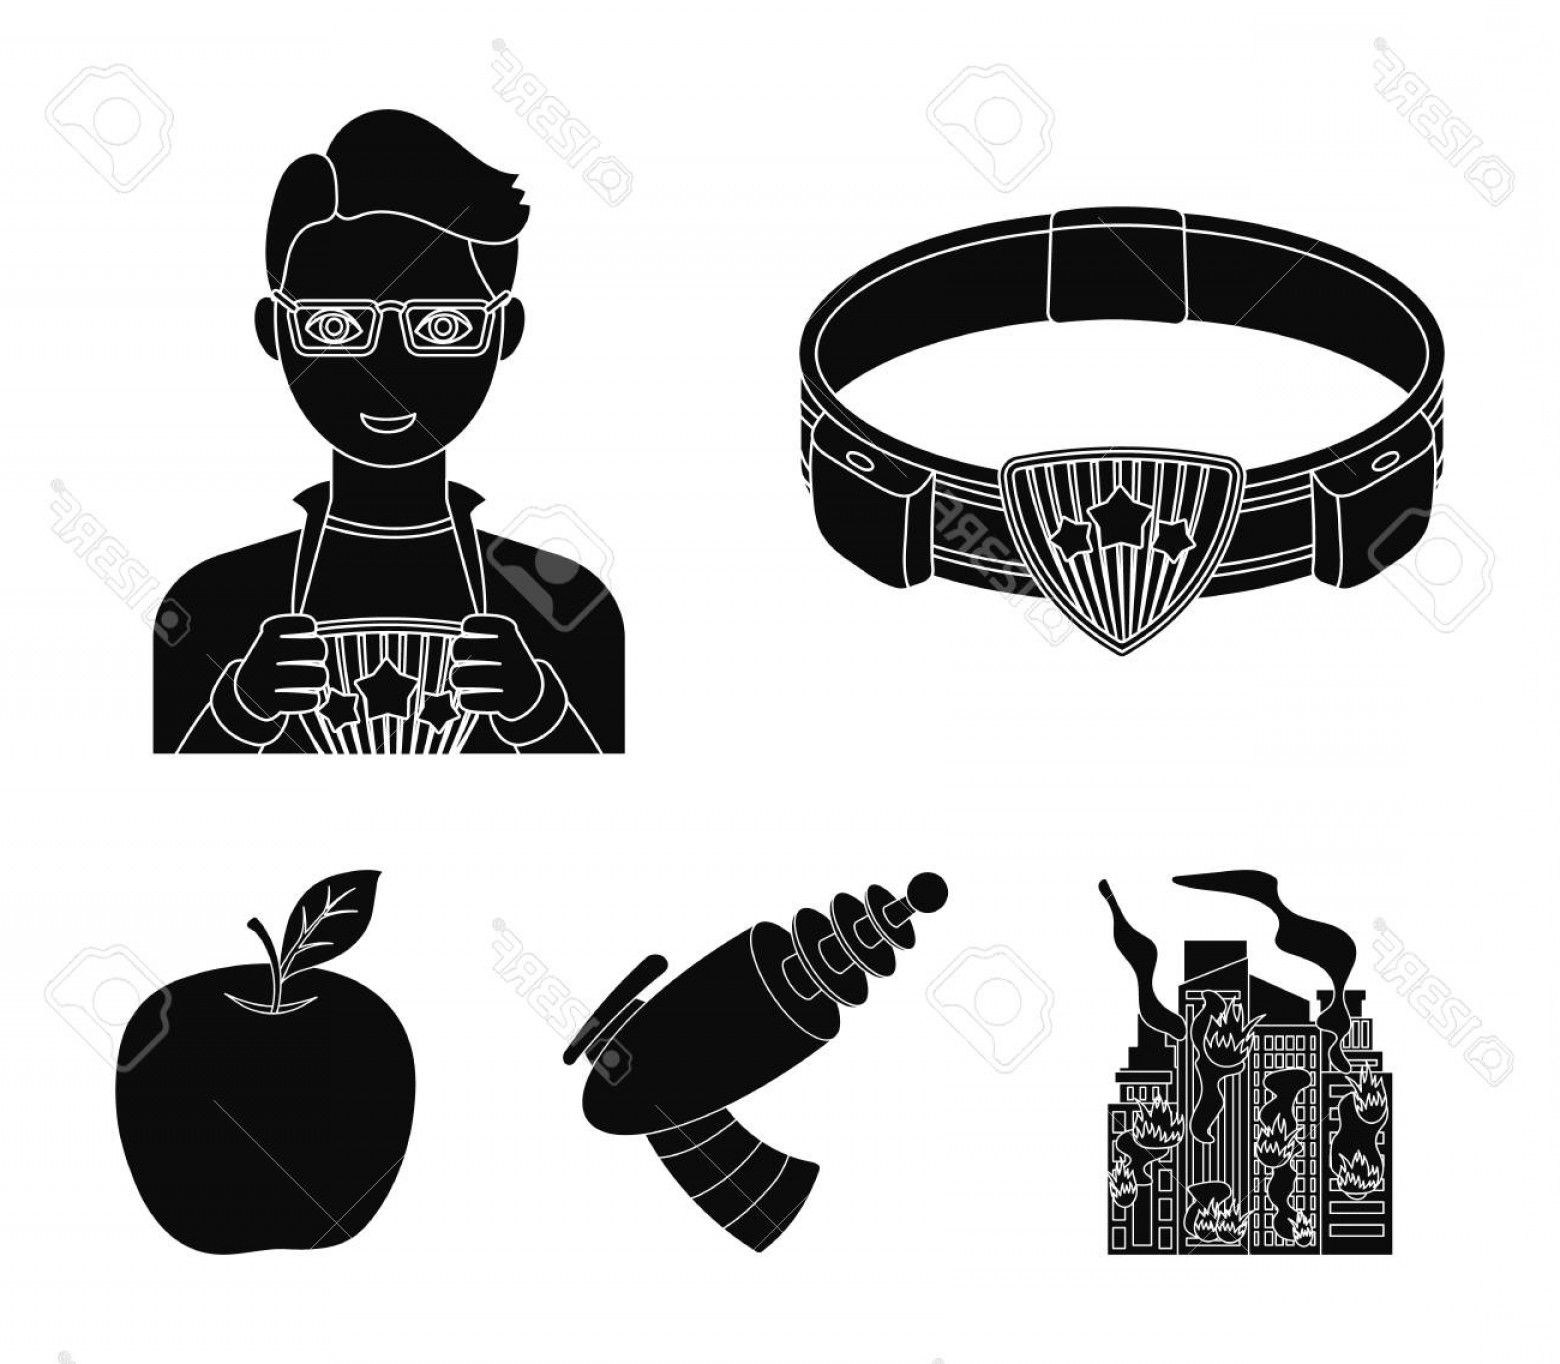 Superman Black And White Vector: Photostock Vector Man Young Glasses And Other Icon In Black Style Superman Belt Gun Icons In Set Collection